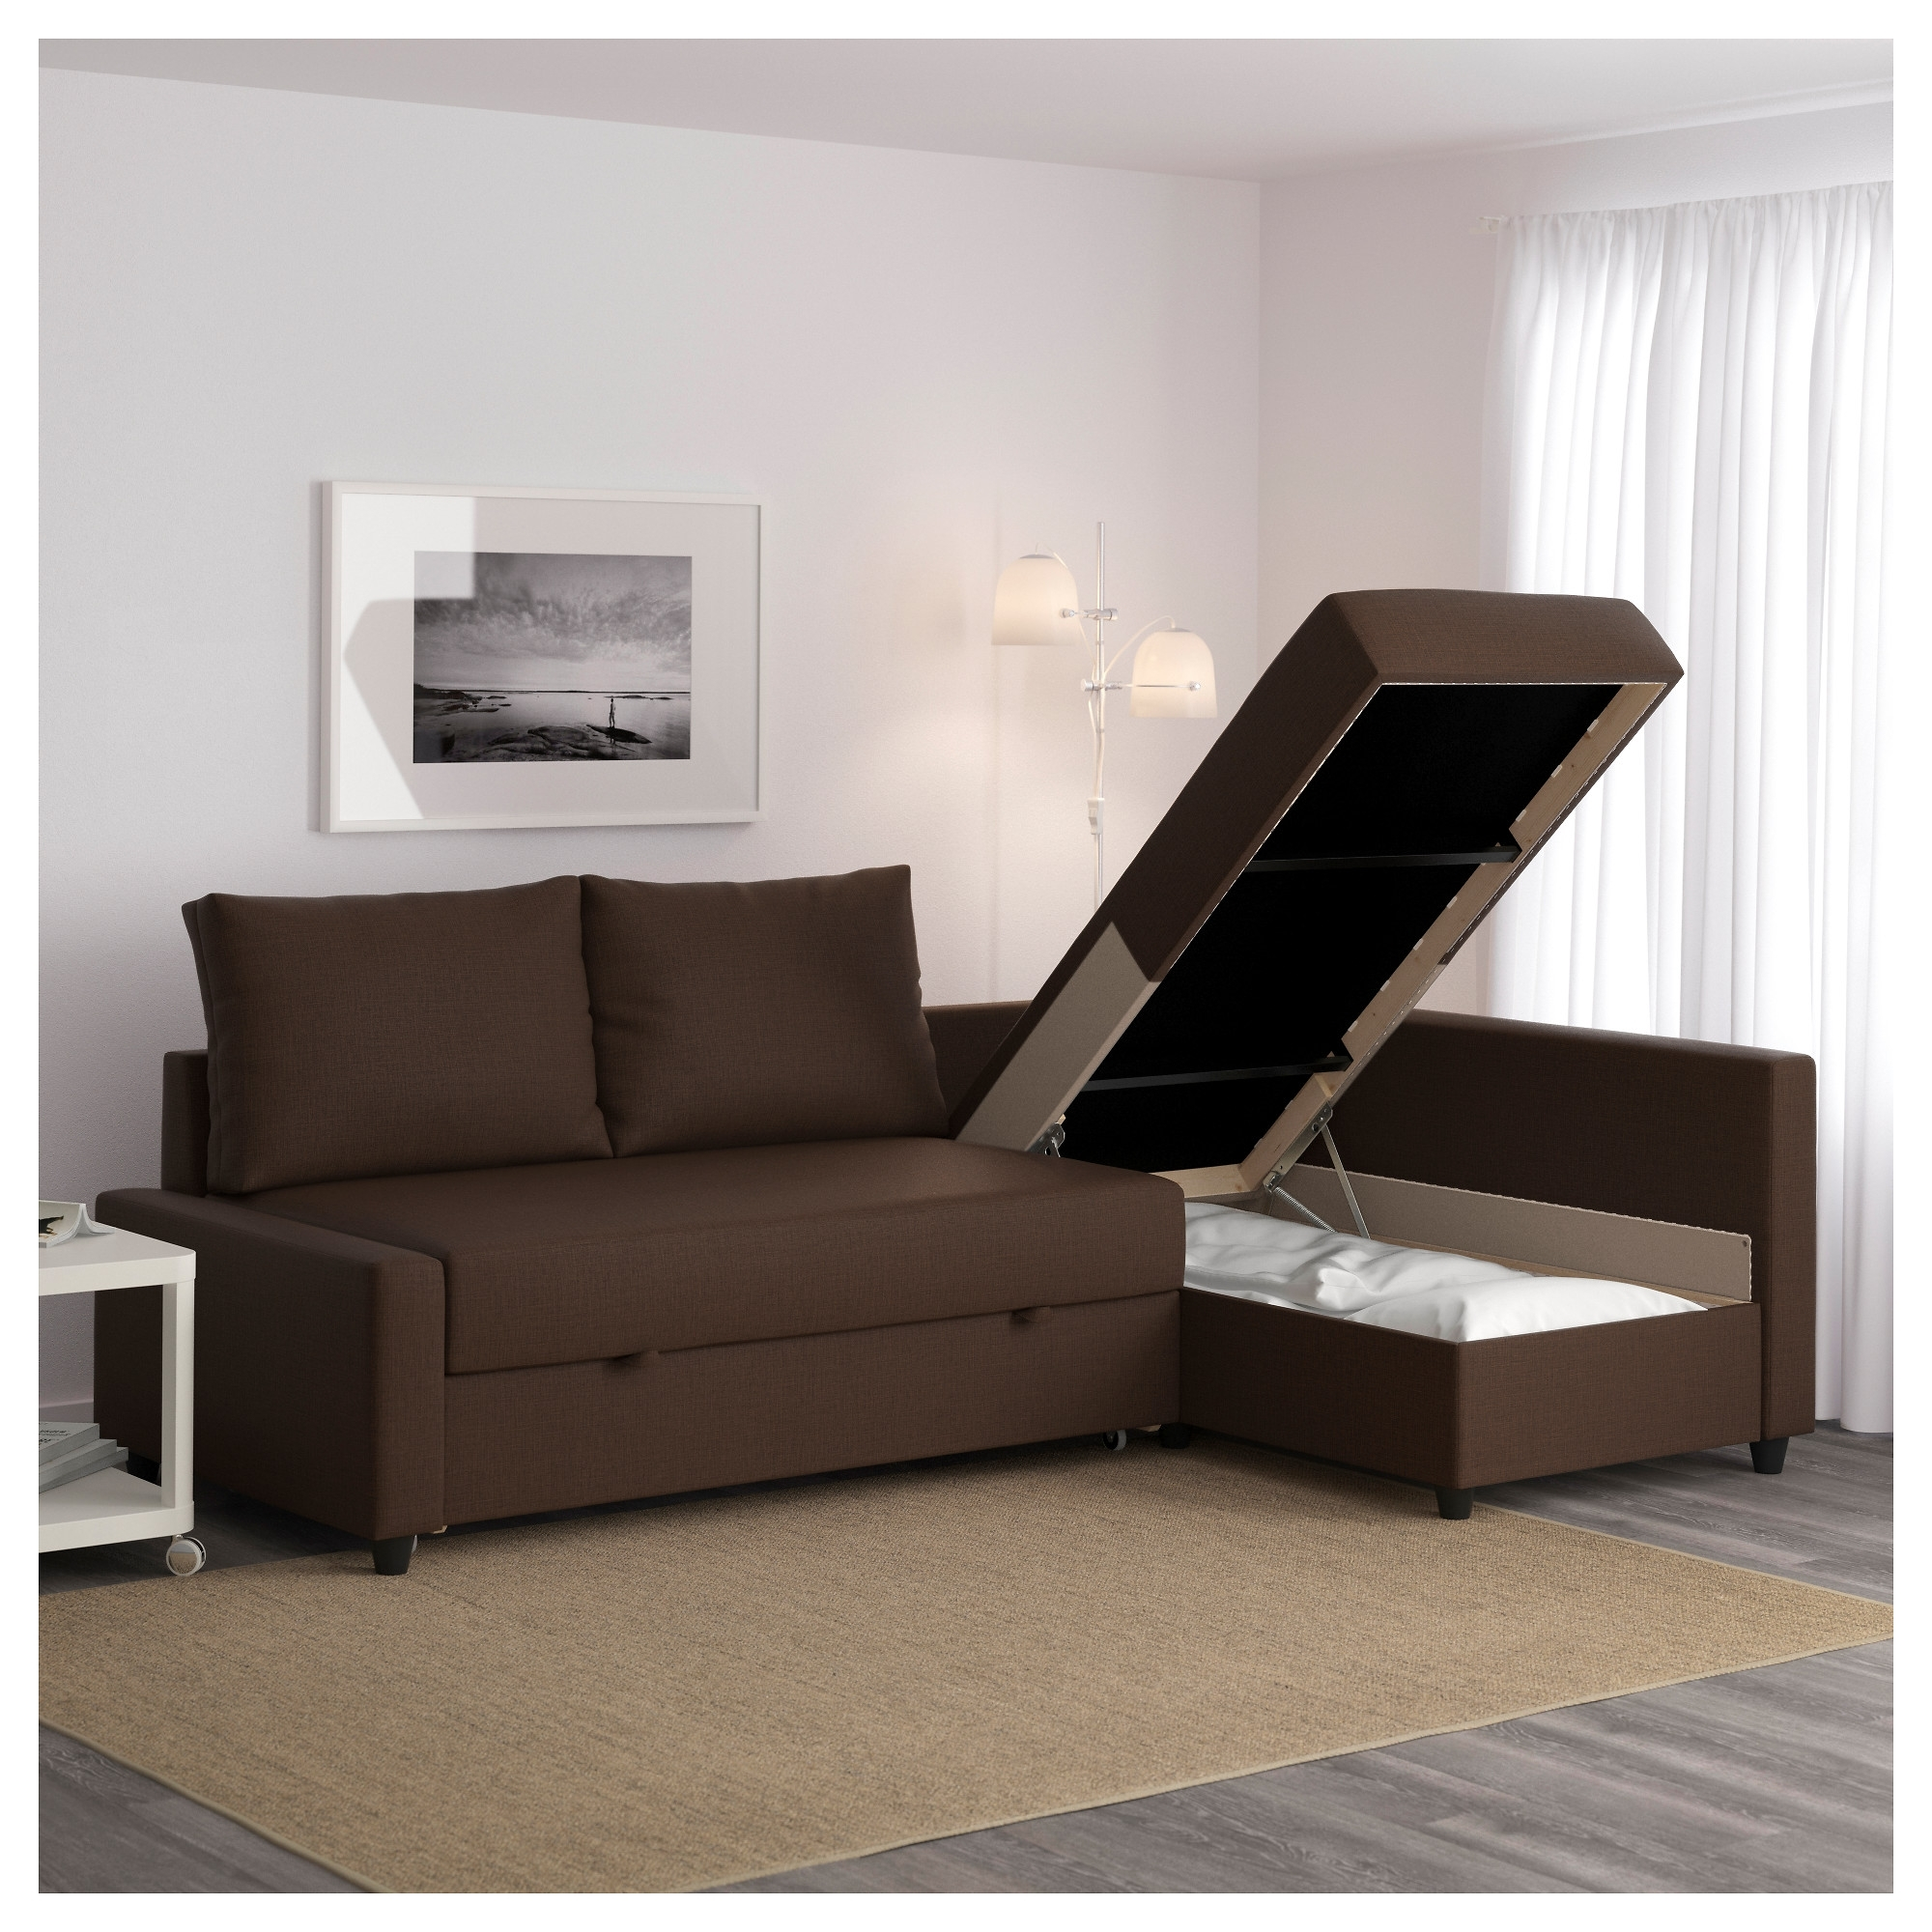 Latest Friheten Corner Sofa Bed With Storage Skiftebo Brown – Ikea Pertaining To Ikea Corner Sofas With Storage (View 9 of 15)